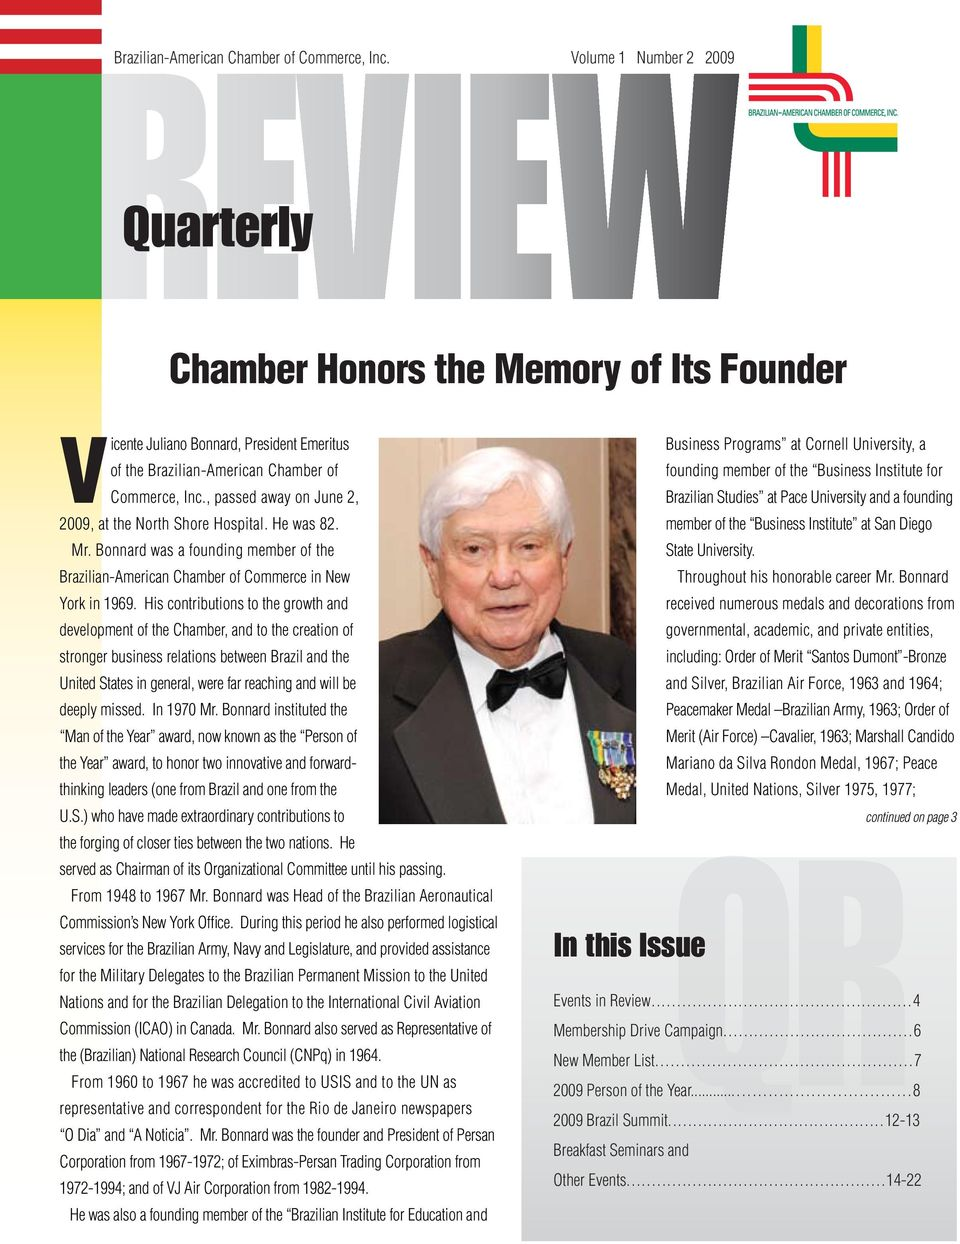 , passed away on June 2, 2009, at the North Shore Hospital. He was 82. Mr. Bonnard was a founding member of the Brazilian-American Chamber of Commerce in New York in 1969.